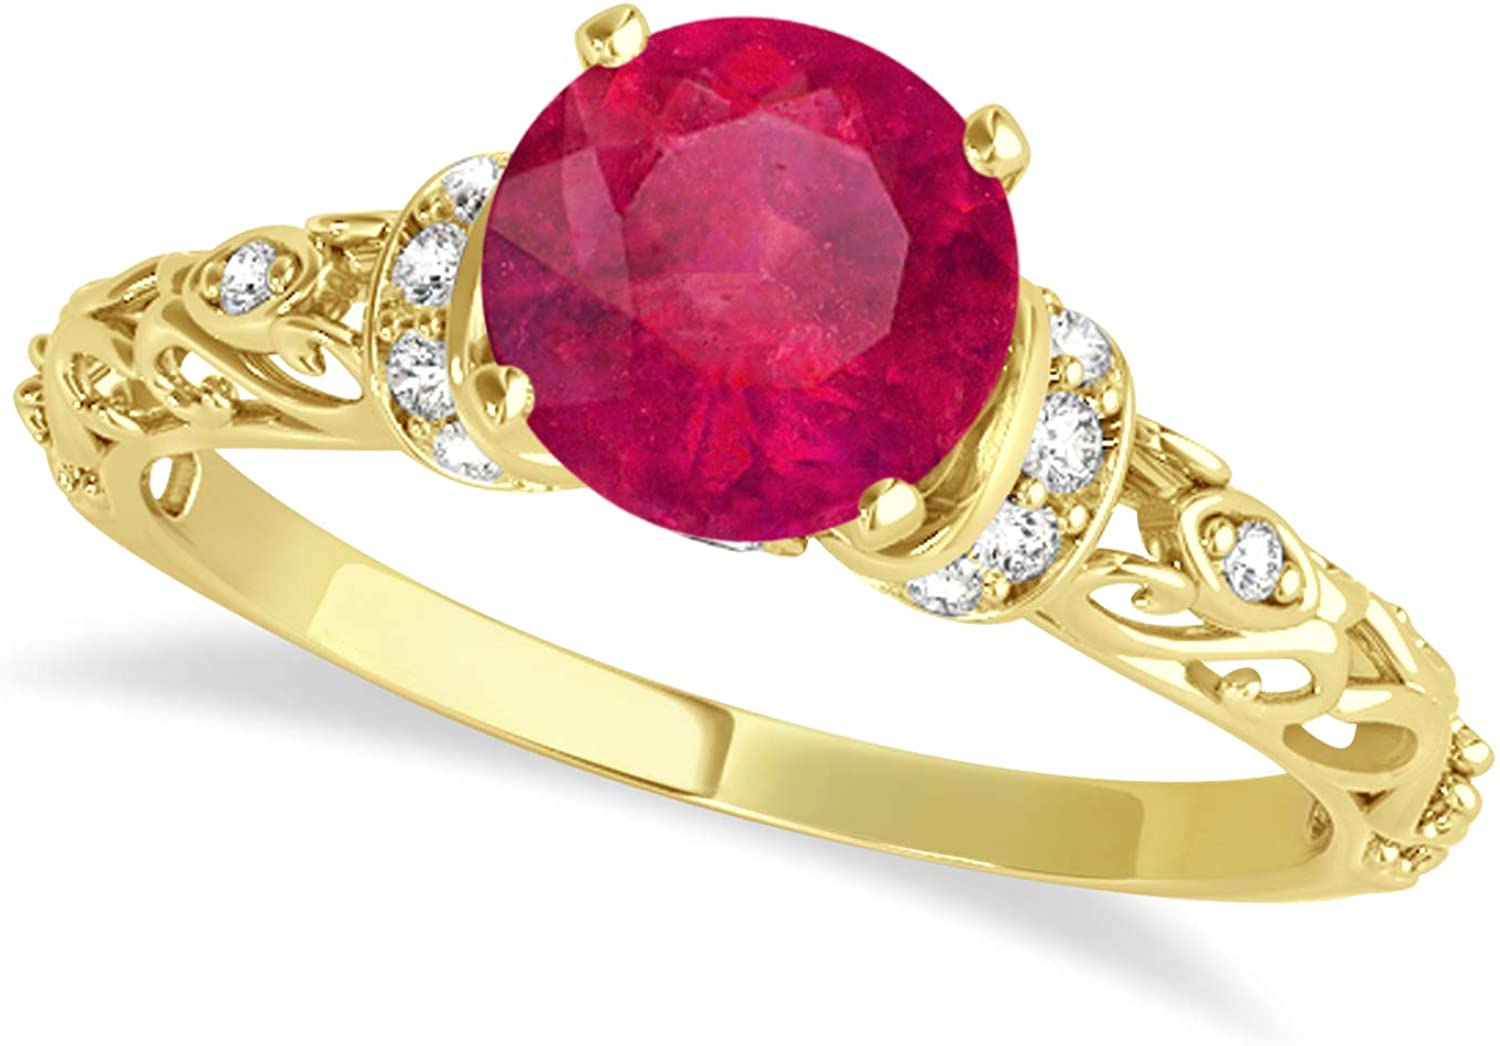 (1.62ct) 14k Yellow Gold Ruby and Diamond Antique-Style Engagement Ring